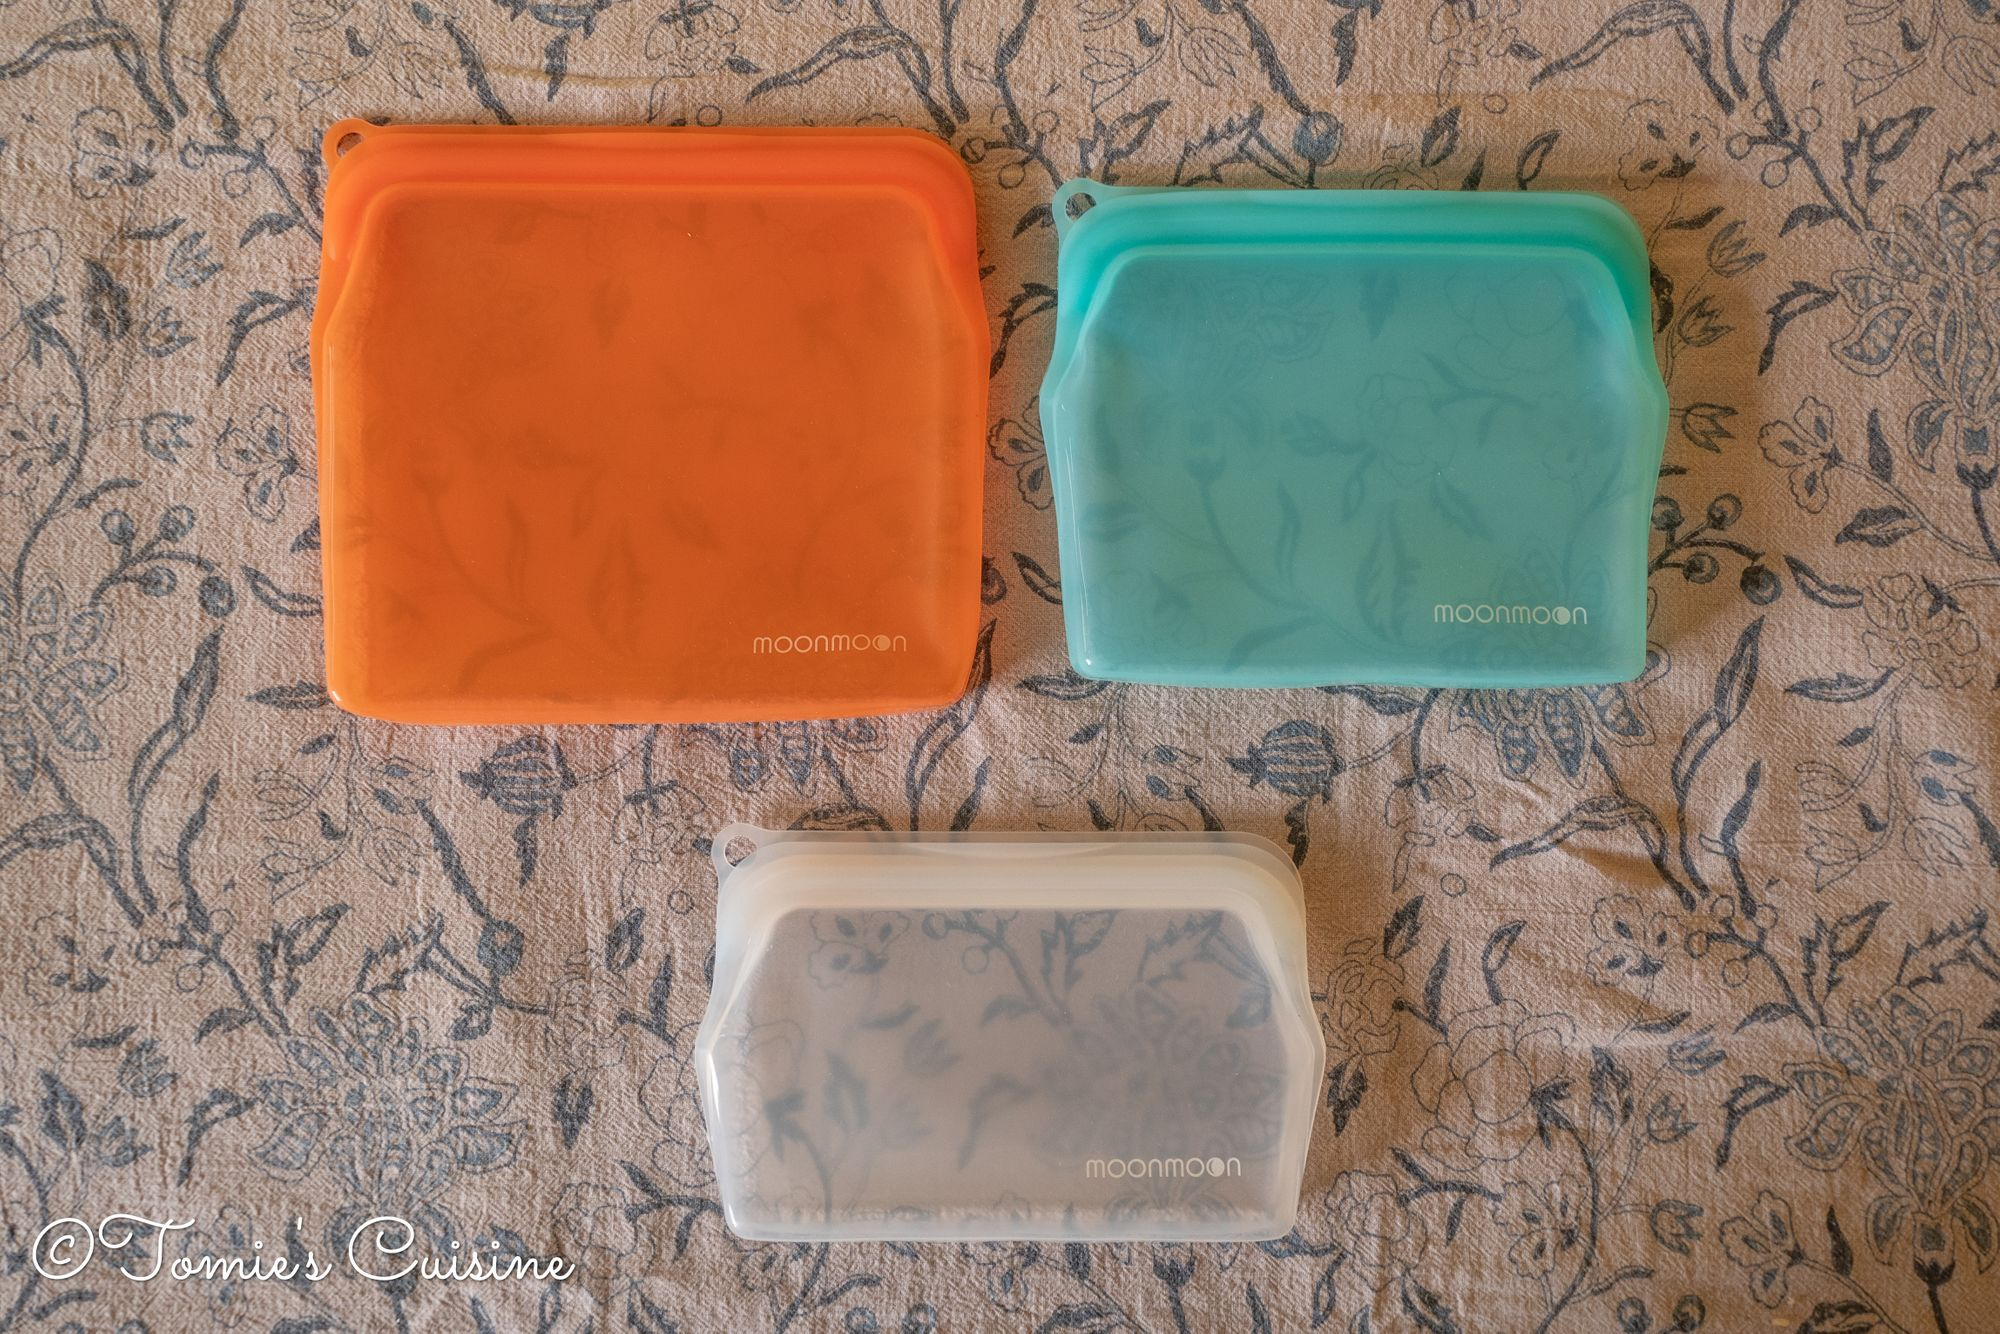 Moonmoon reusable silicone food bags colour options